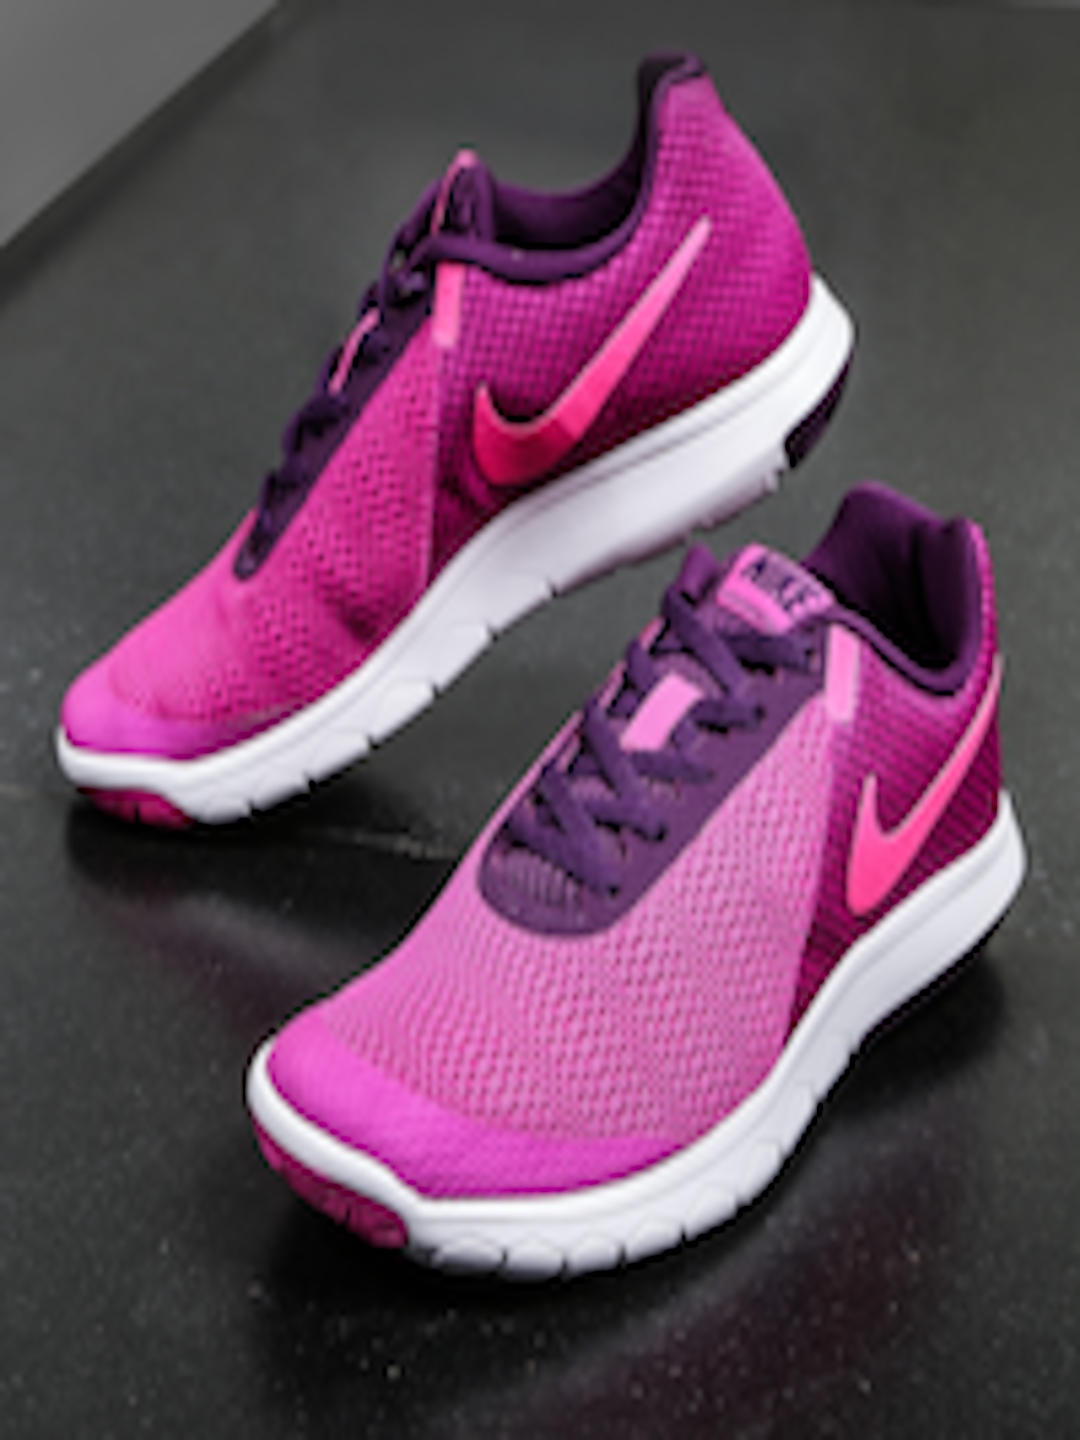 Buy Nike Women Magenta FLEX EXPERIENCE RN 6 Running Shoes - Sports Shoes  for Women 2147497  4f8a5d101